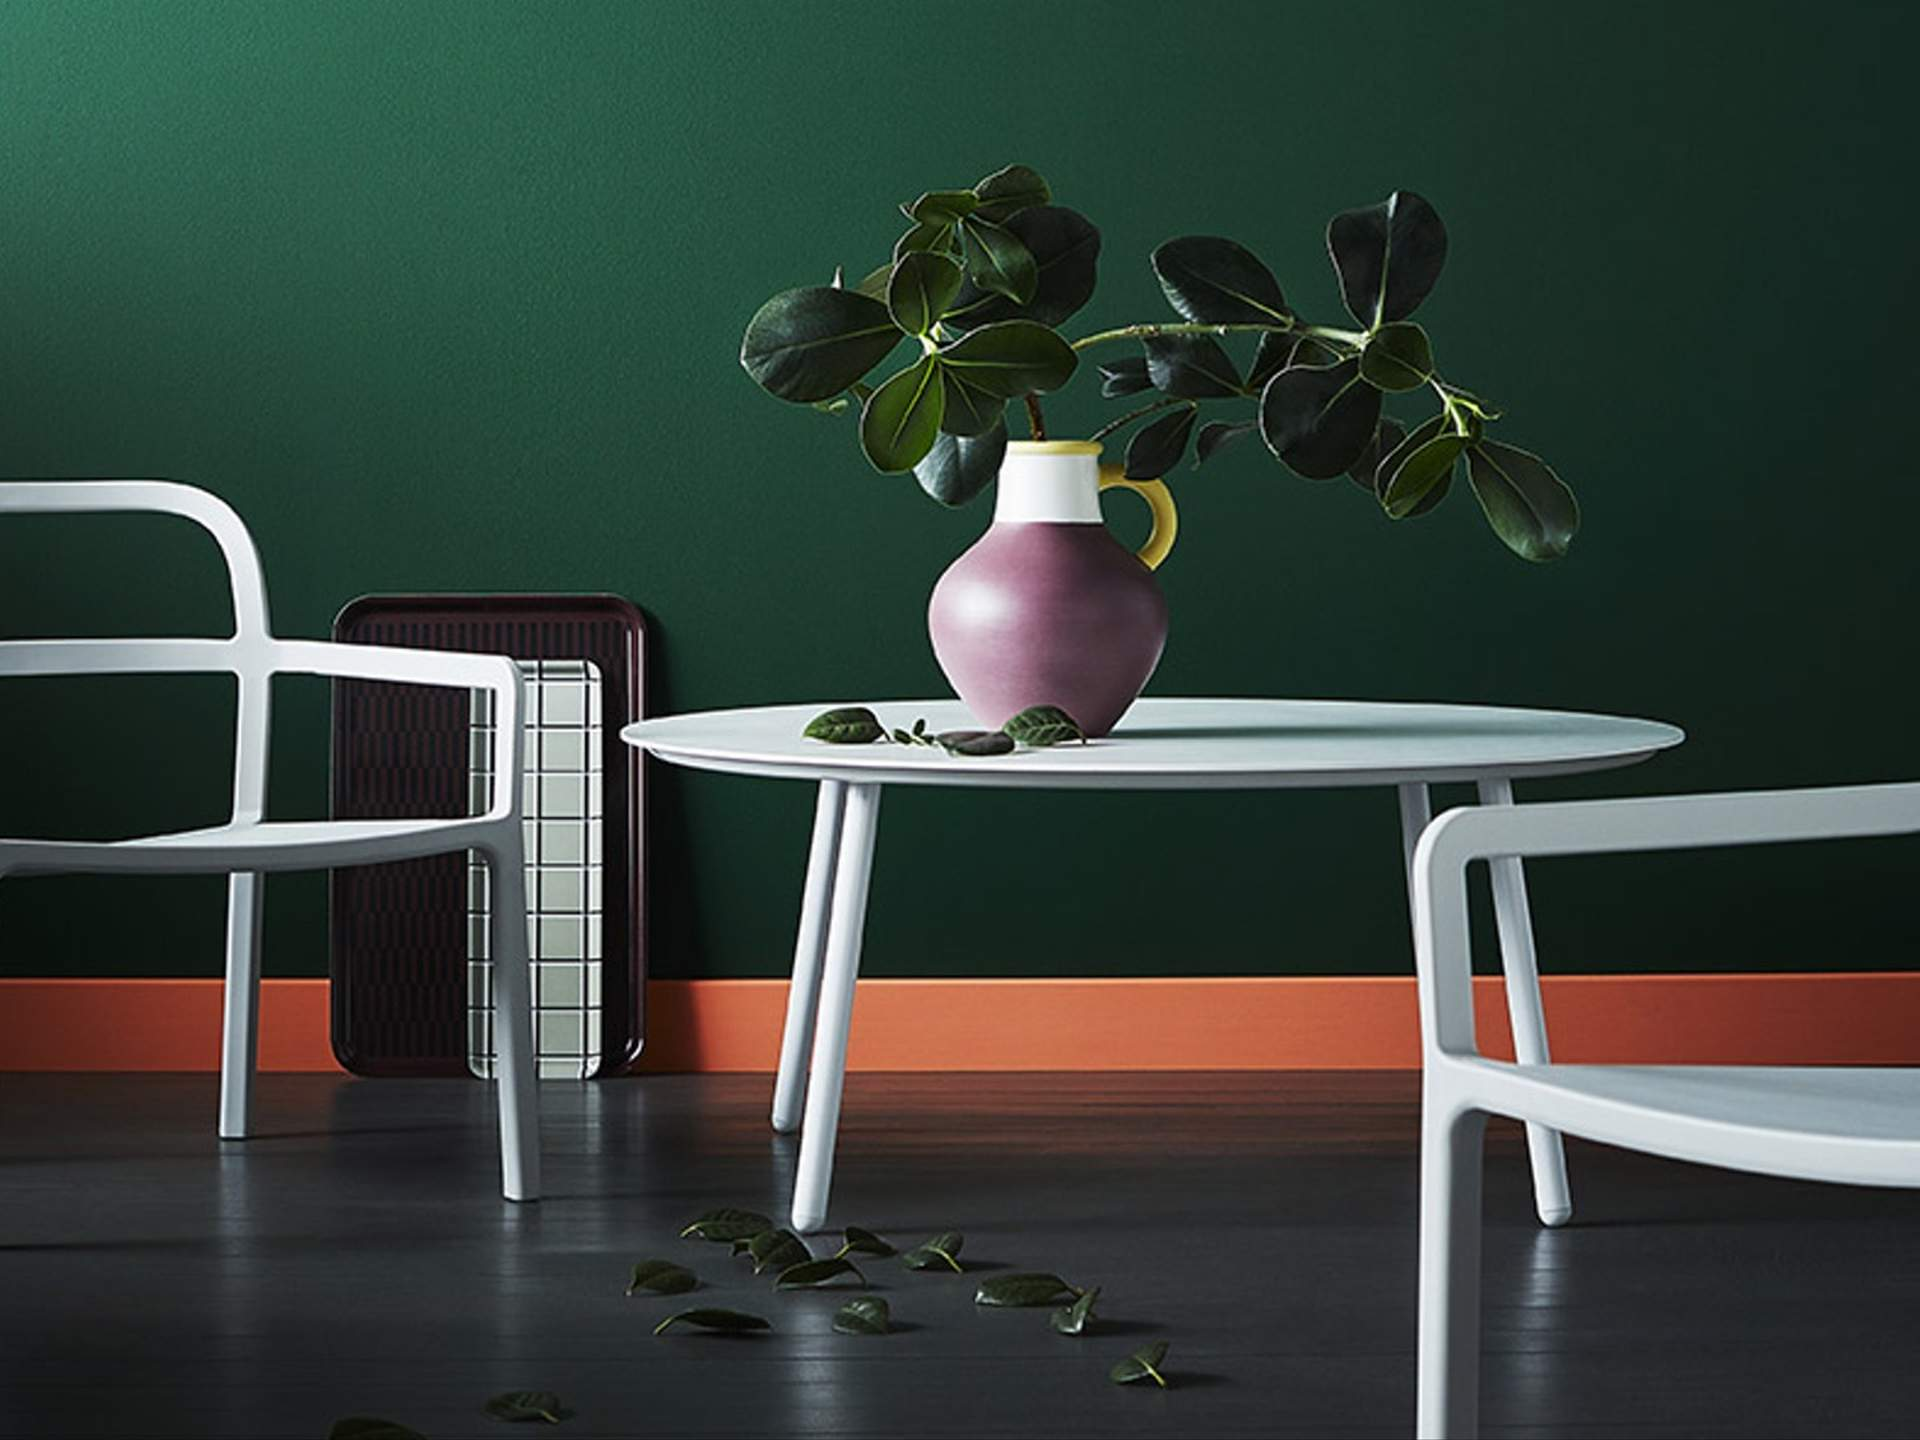 Ikea Hay Ikea Launches New Non Disposable Furniture Collection With Danish